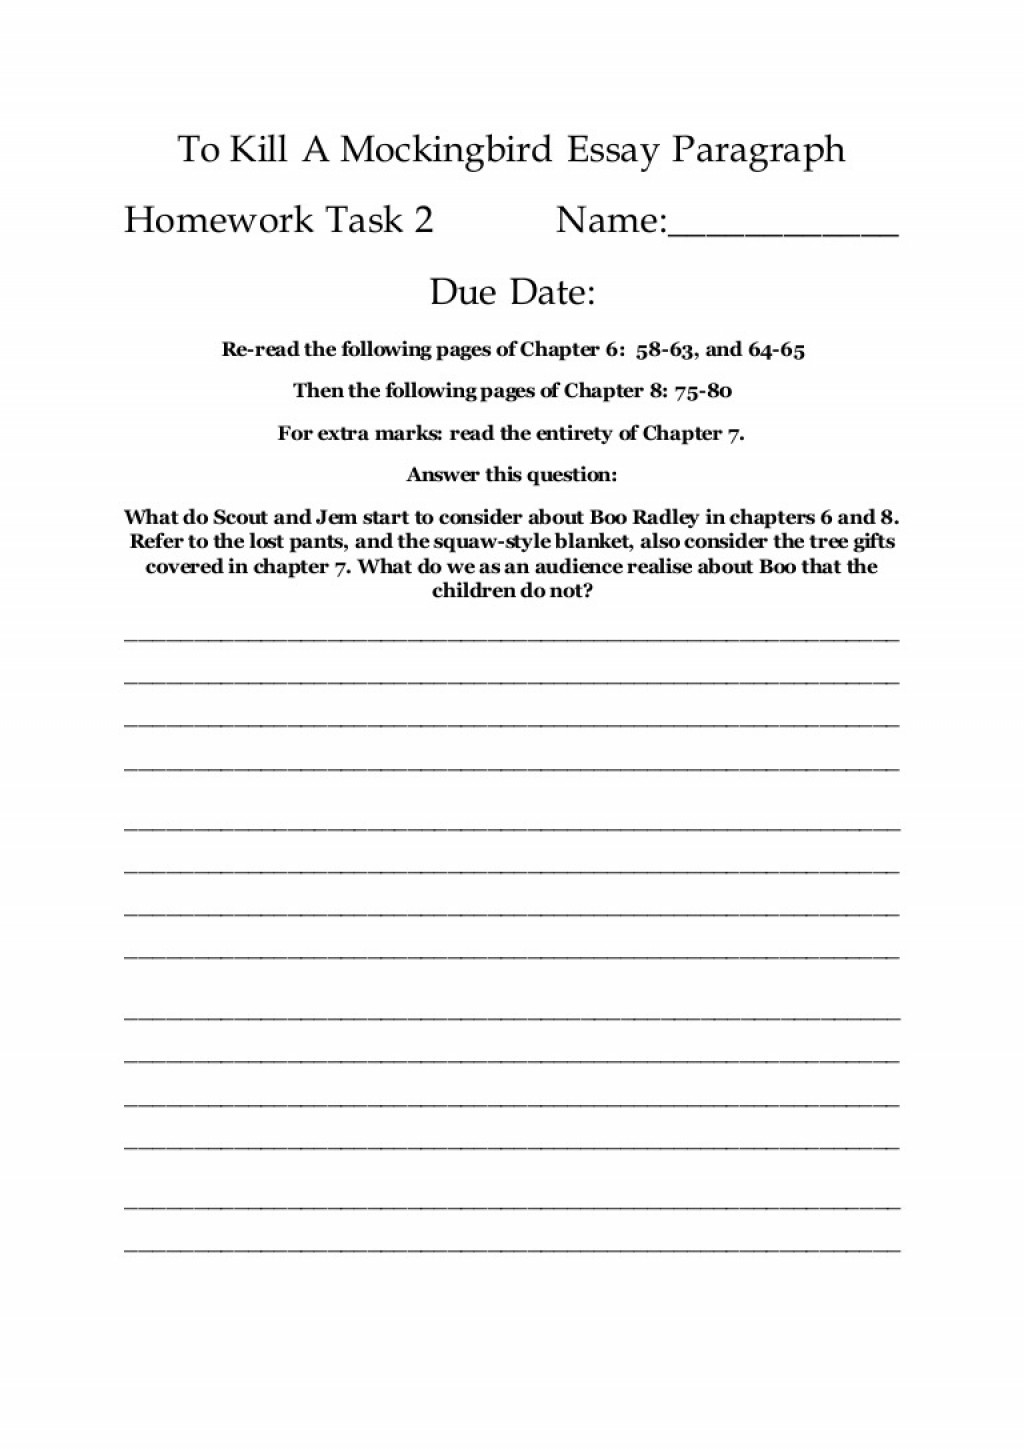 000 Astounding To Kill A Mockingbird Essay Example  Question Courage Thesi PdfLarge